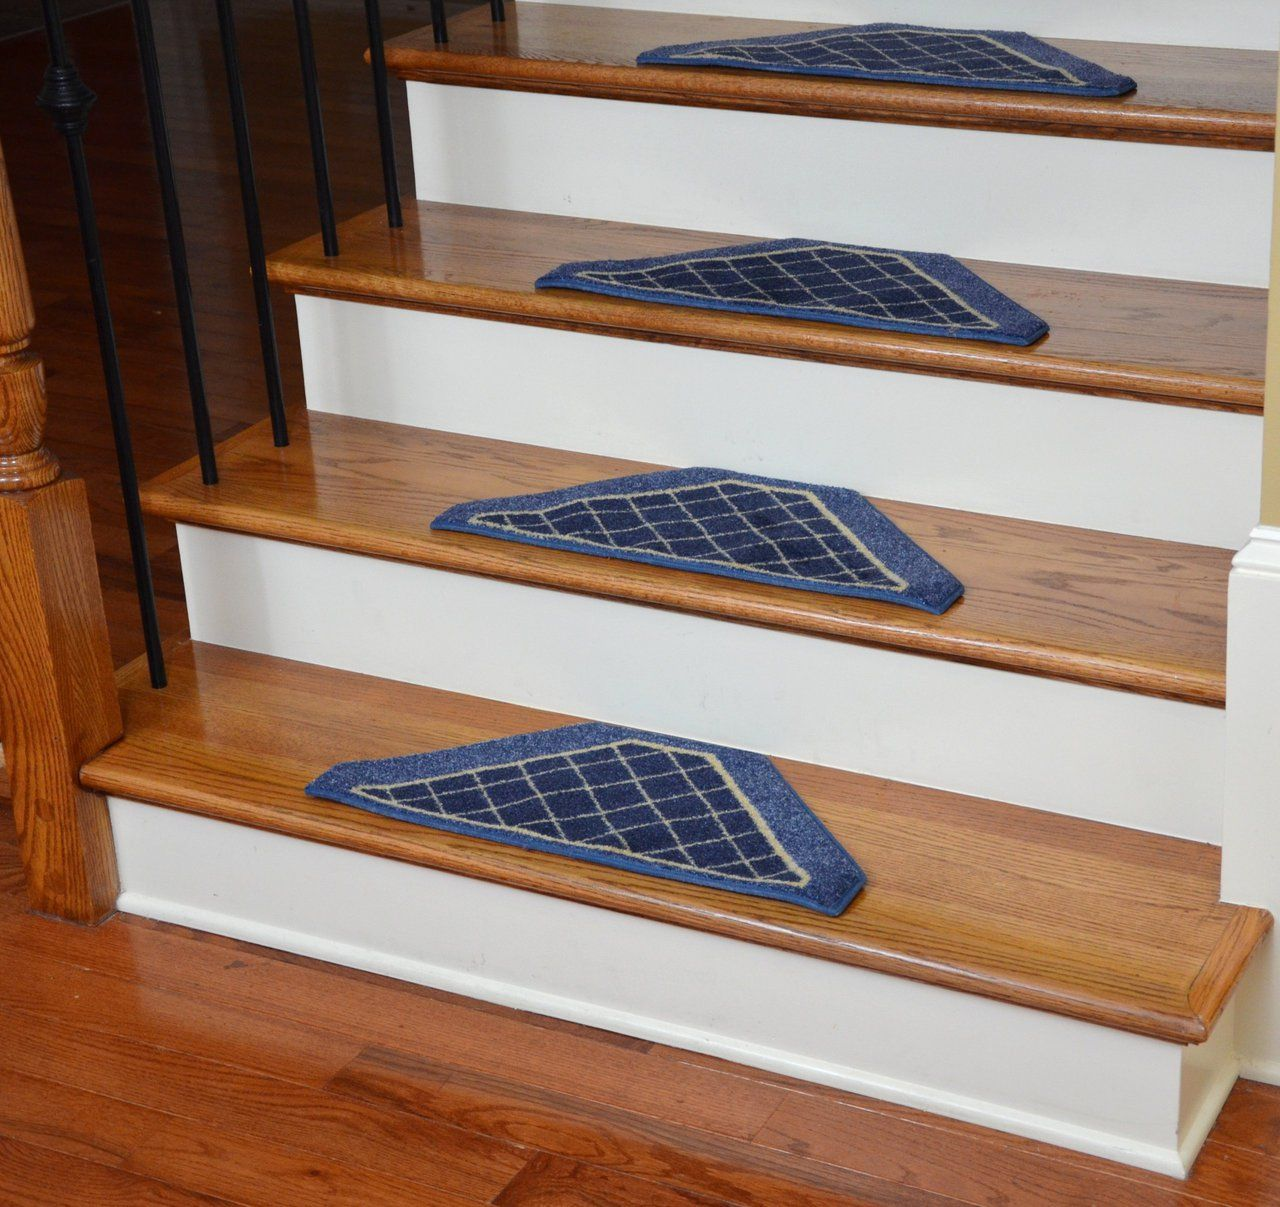 Washable Non Skid Carpet Stair Treads   Navy Blue Checkerboard   Dean Stair  Treads